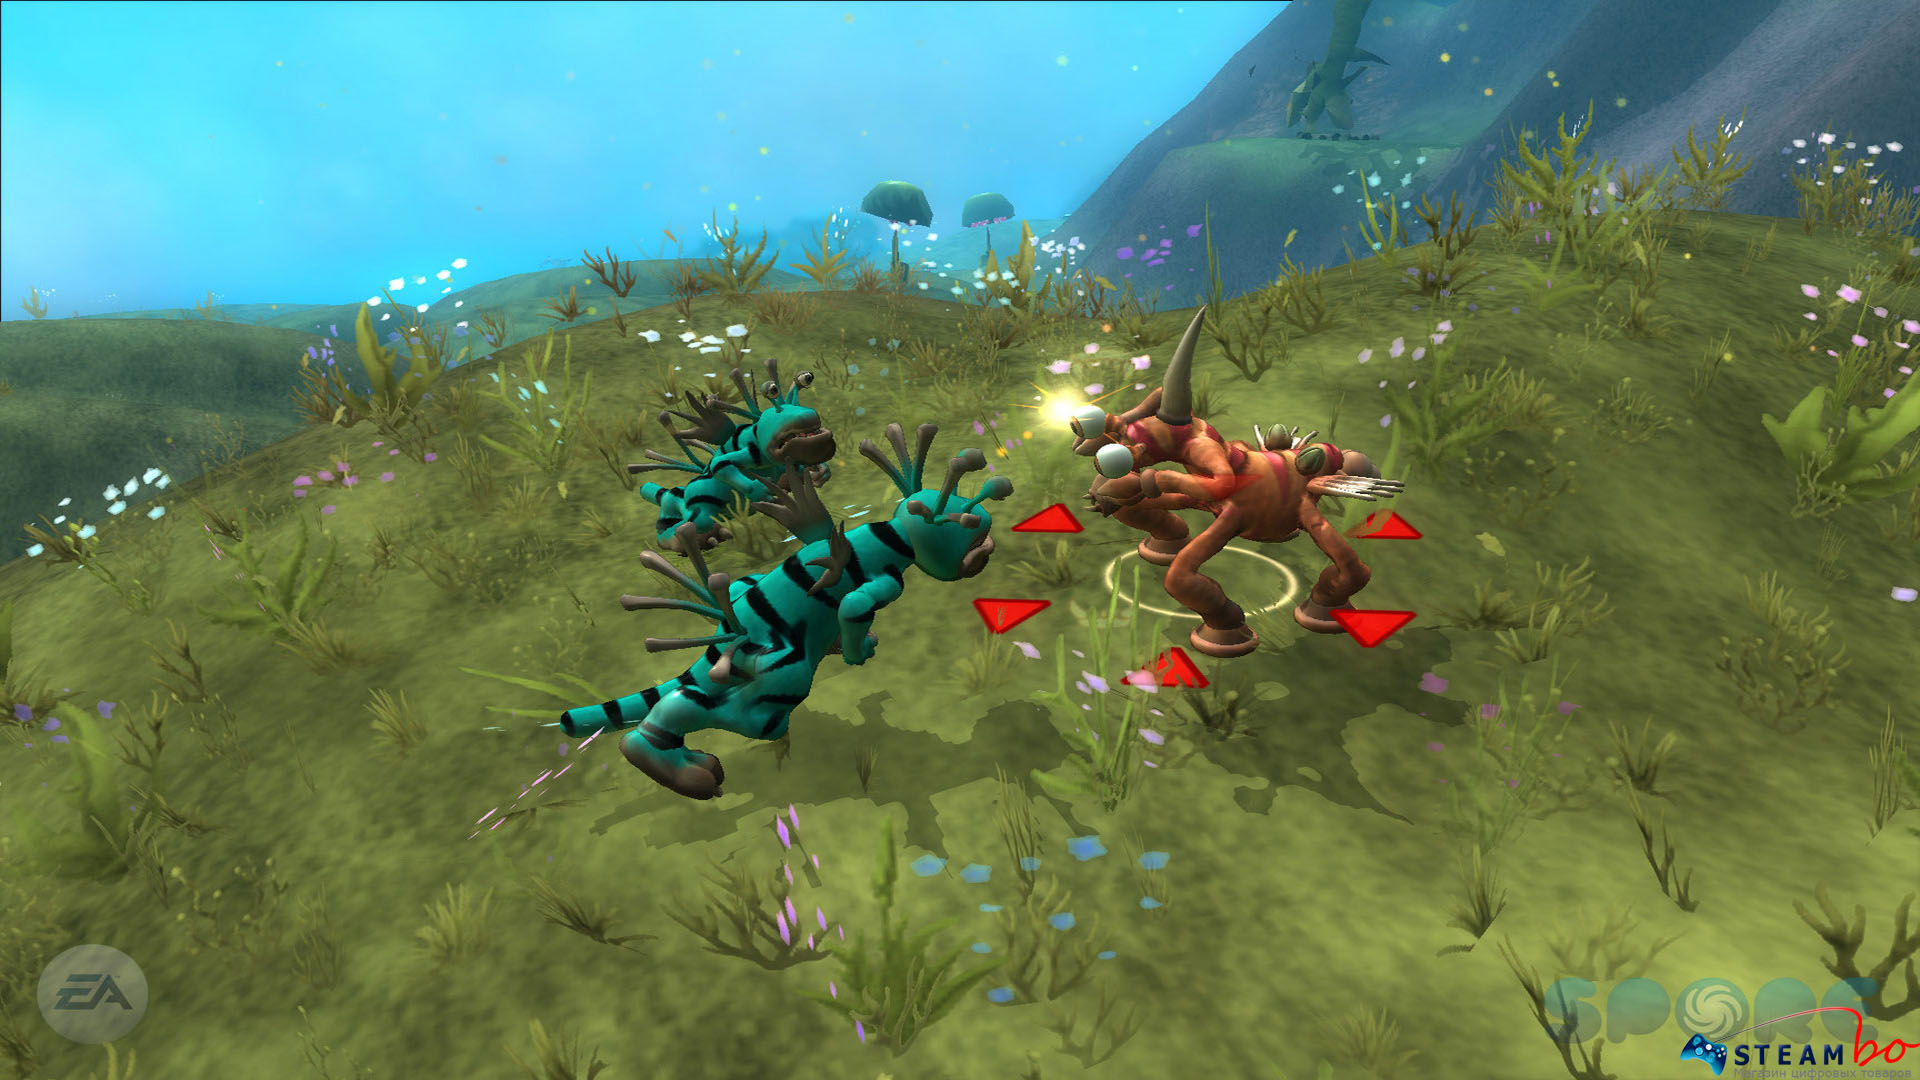 how to download spore mods on steam